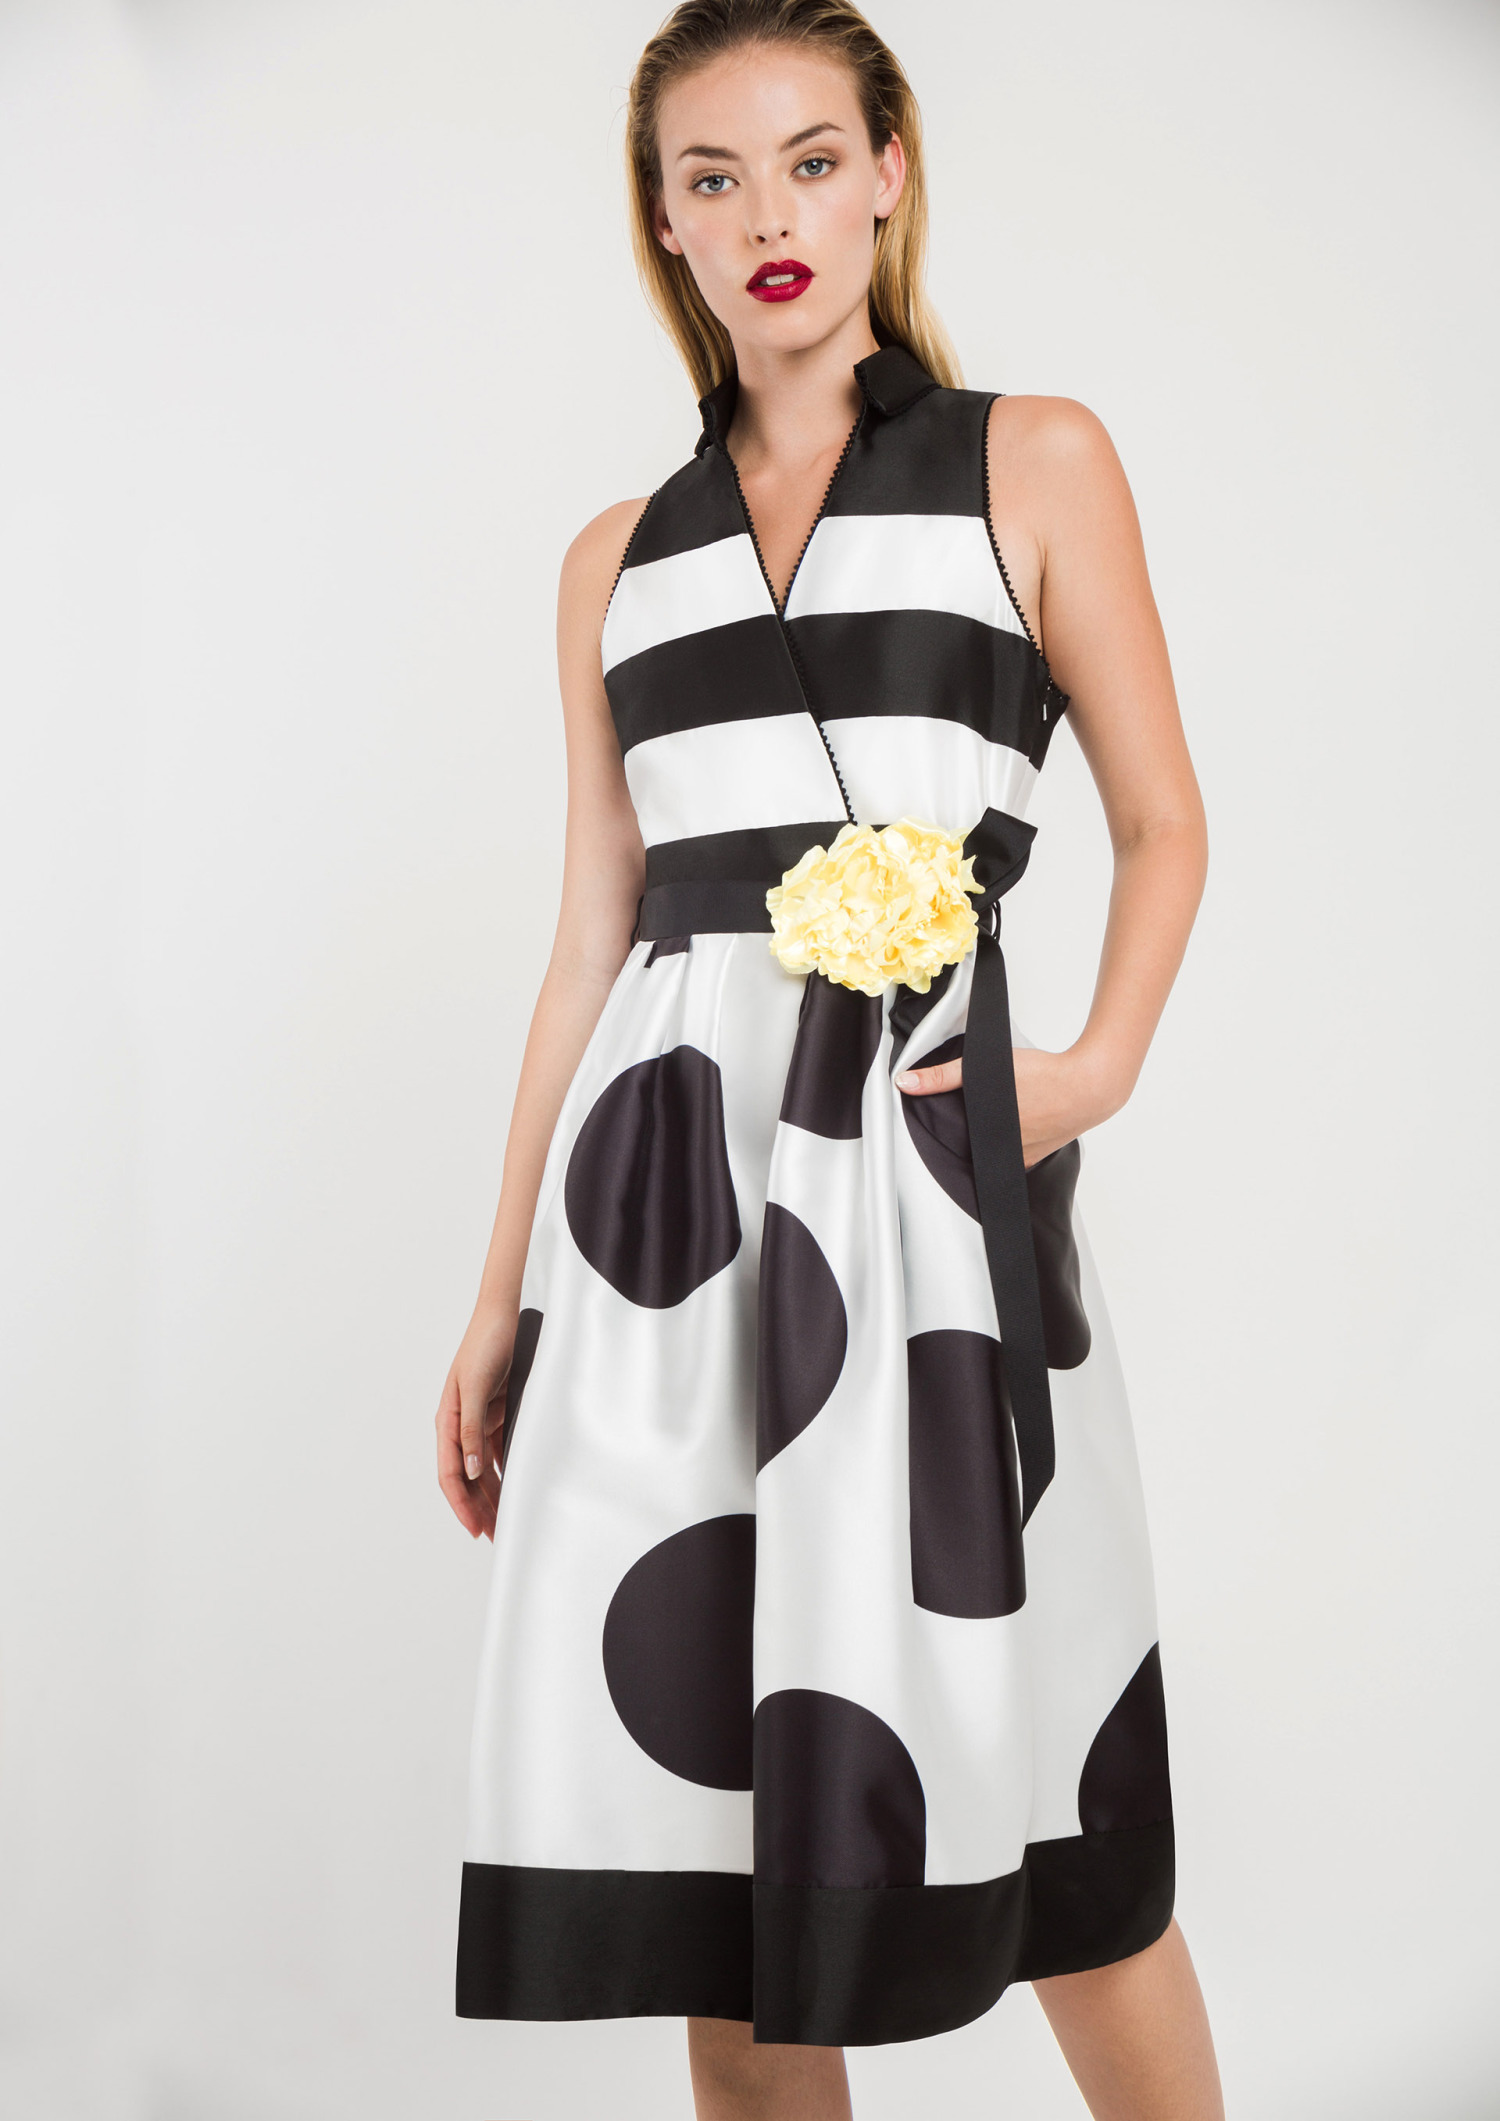 Black and White Dress with Collar 00006